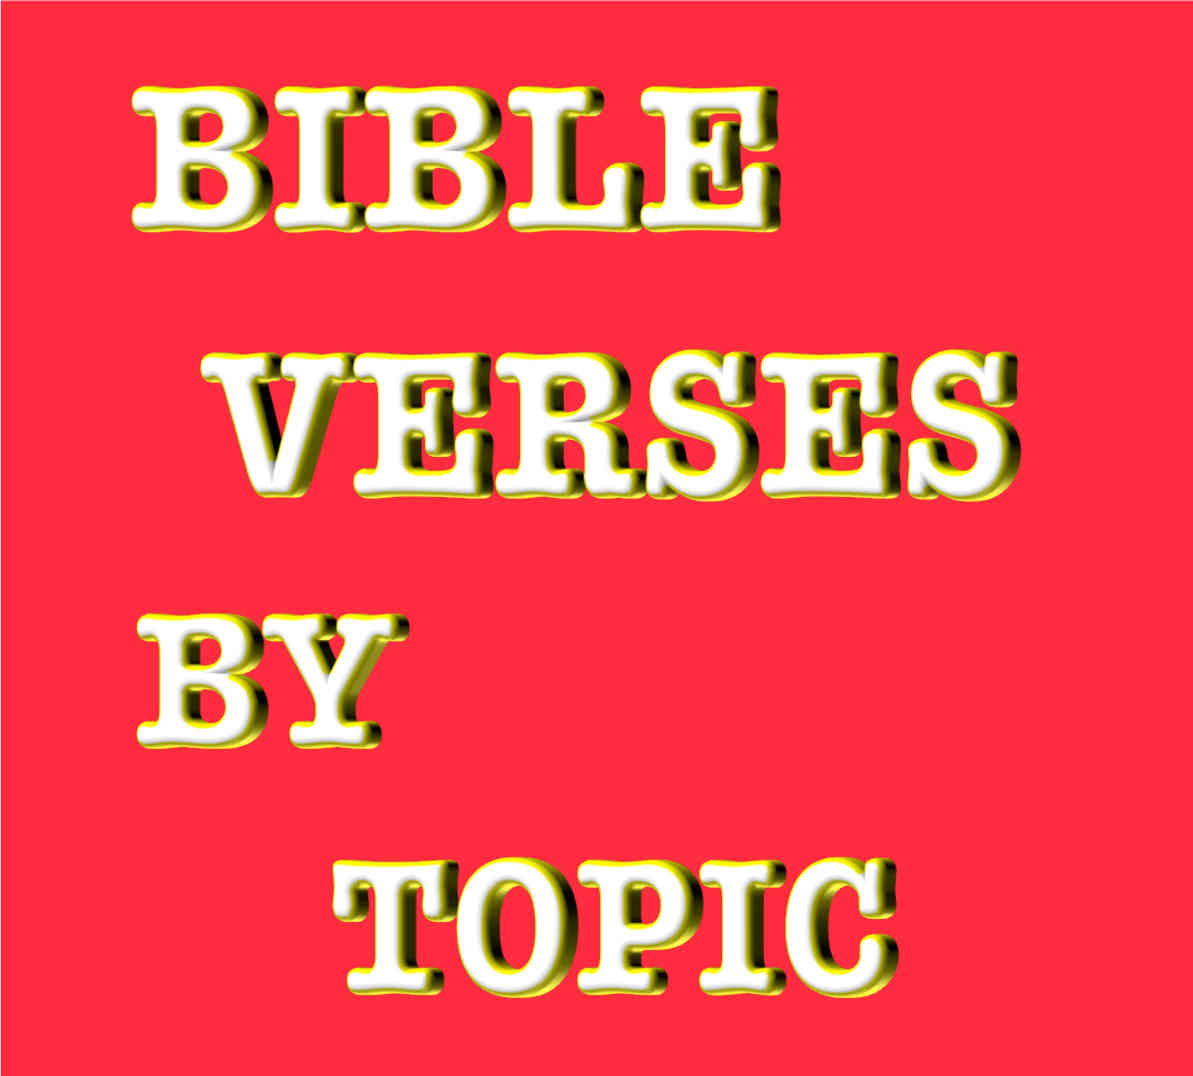 Bible verses by topic inspirational scriptures by subject bible verses by topic negle Choice Image